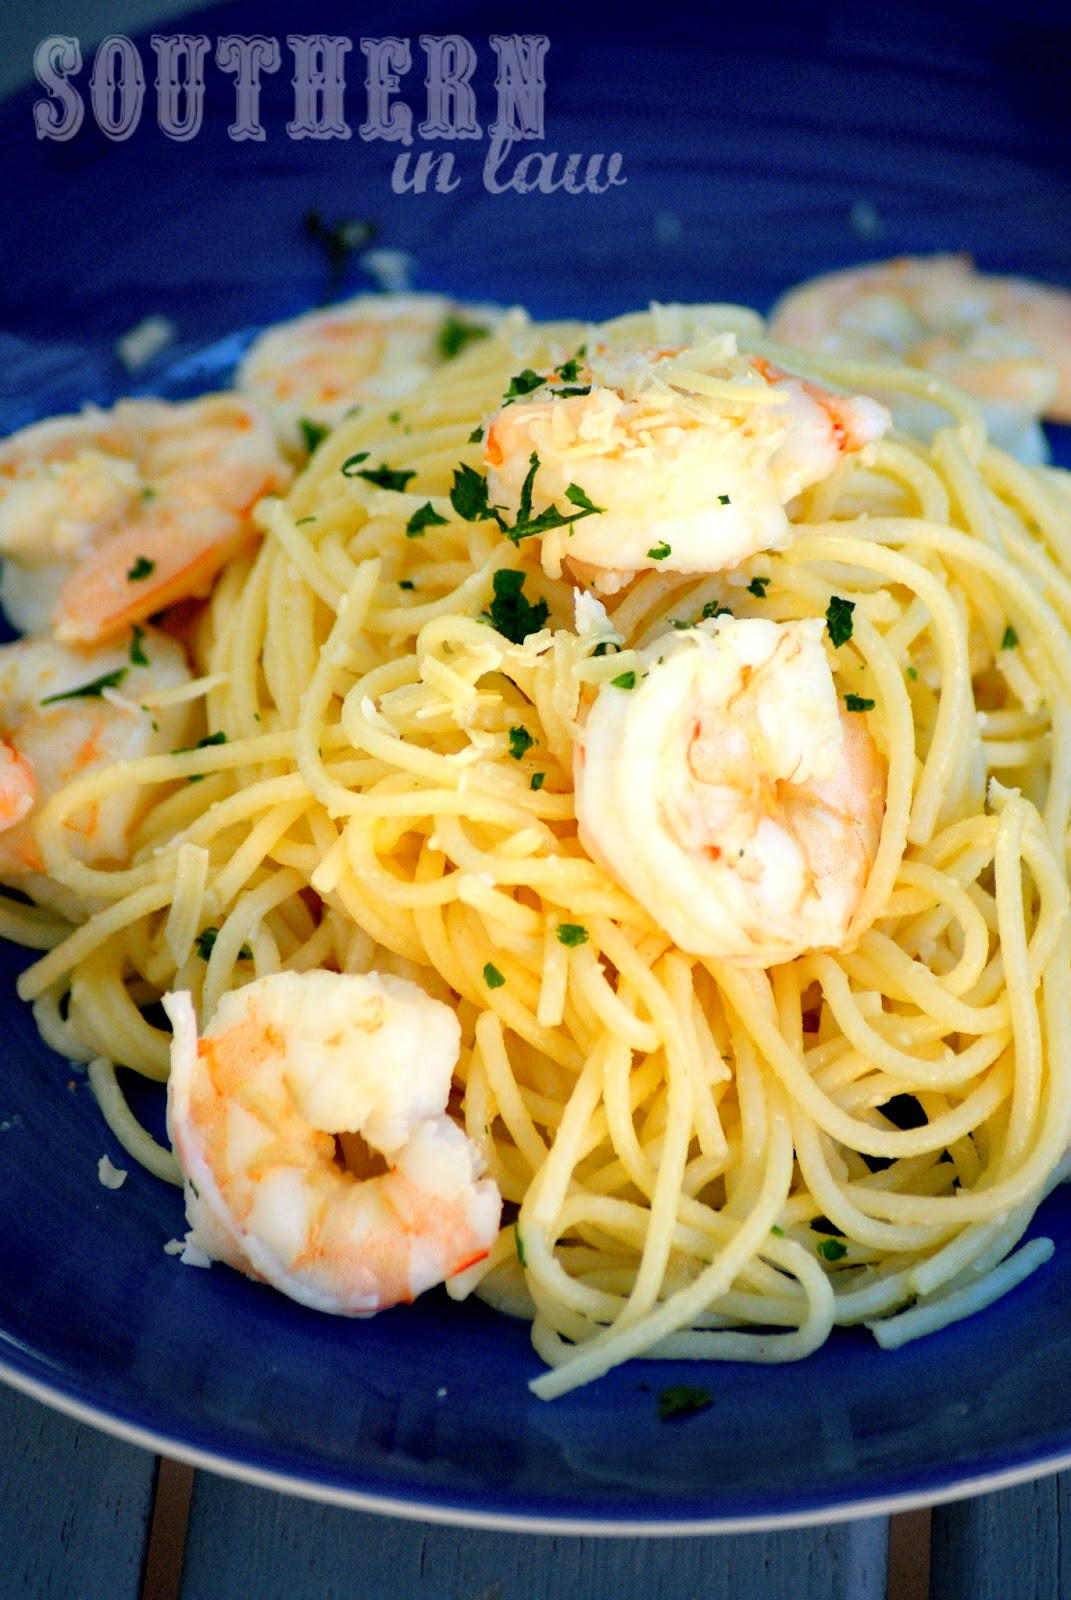 Gluten Free Prawn Spaghetti Recipe - gluten free, low fat, clean eating friendly, healthy spaghetti recipe